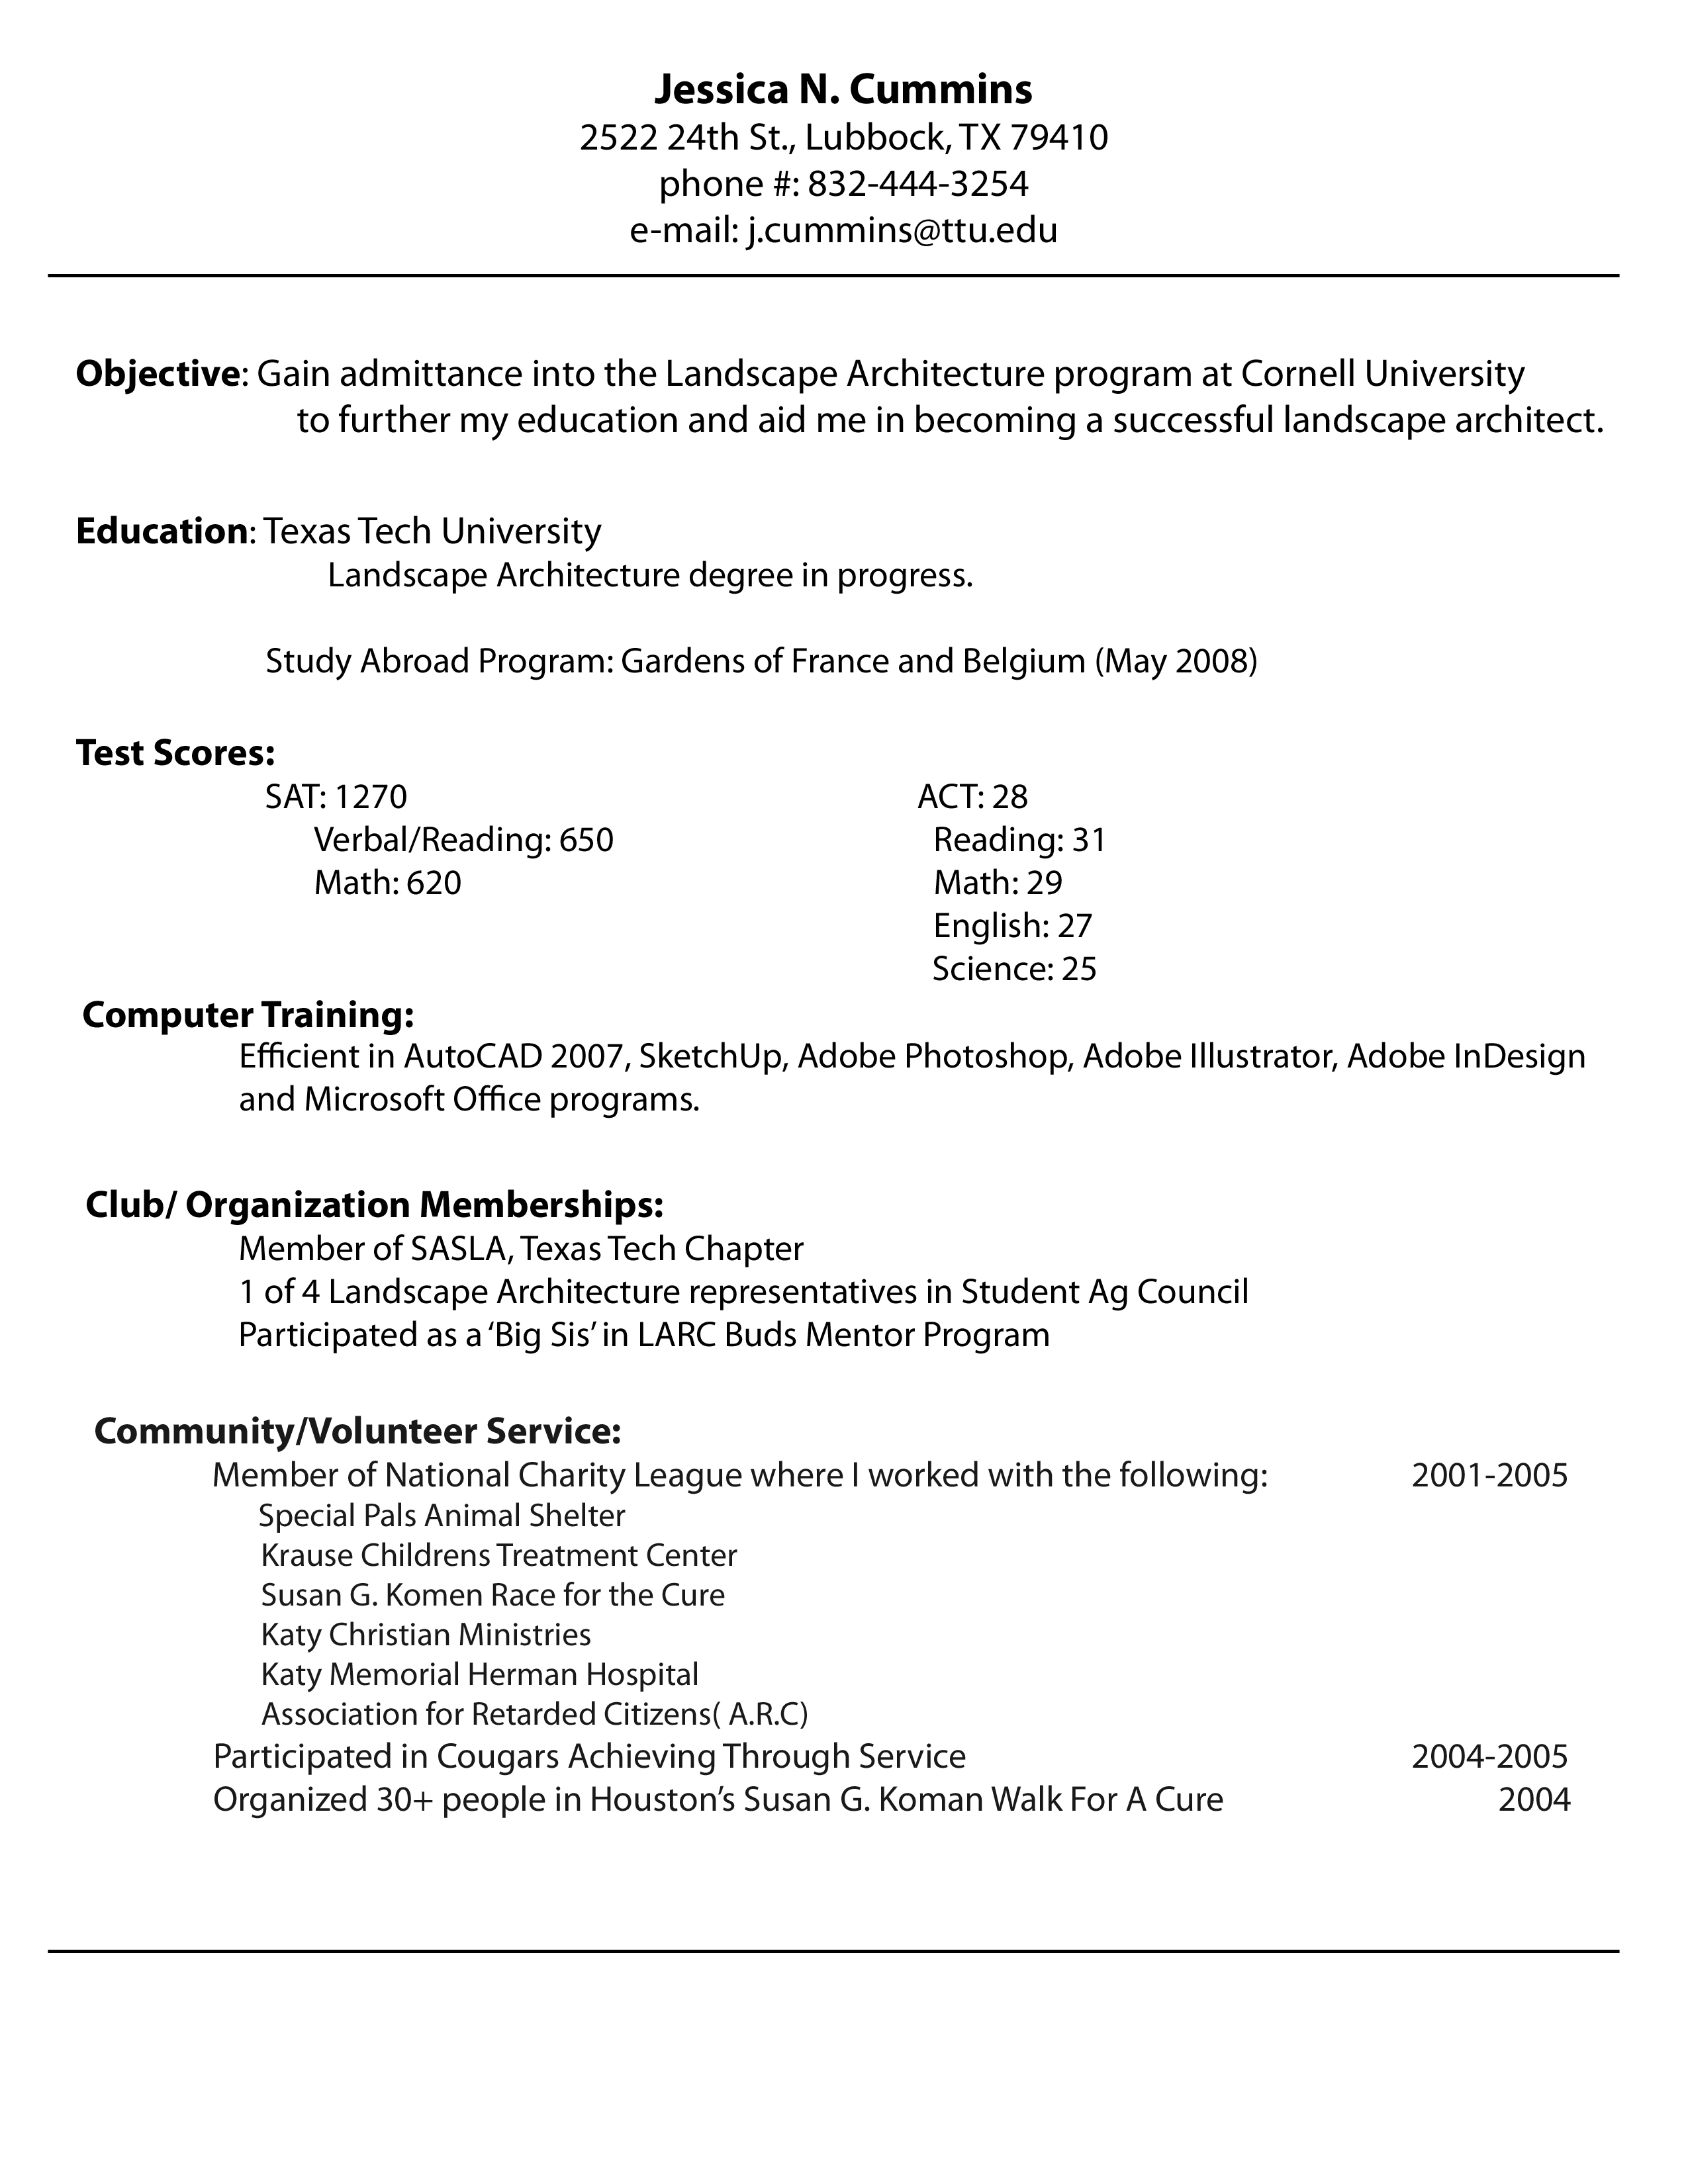 how to make a resume on word professional resume cover how to make a resume on word 2007 how to create a resume in microsoft word